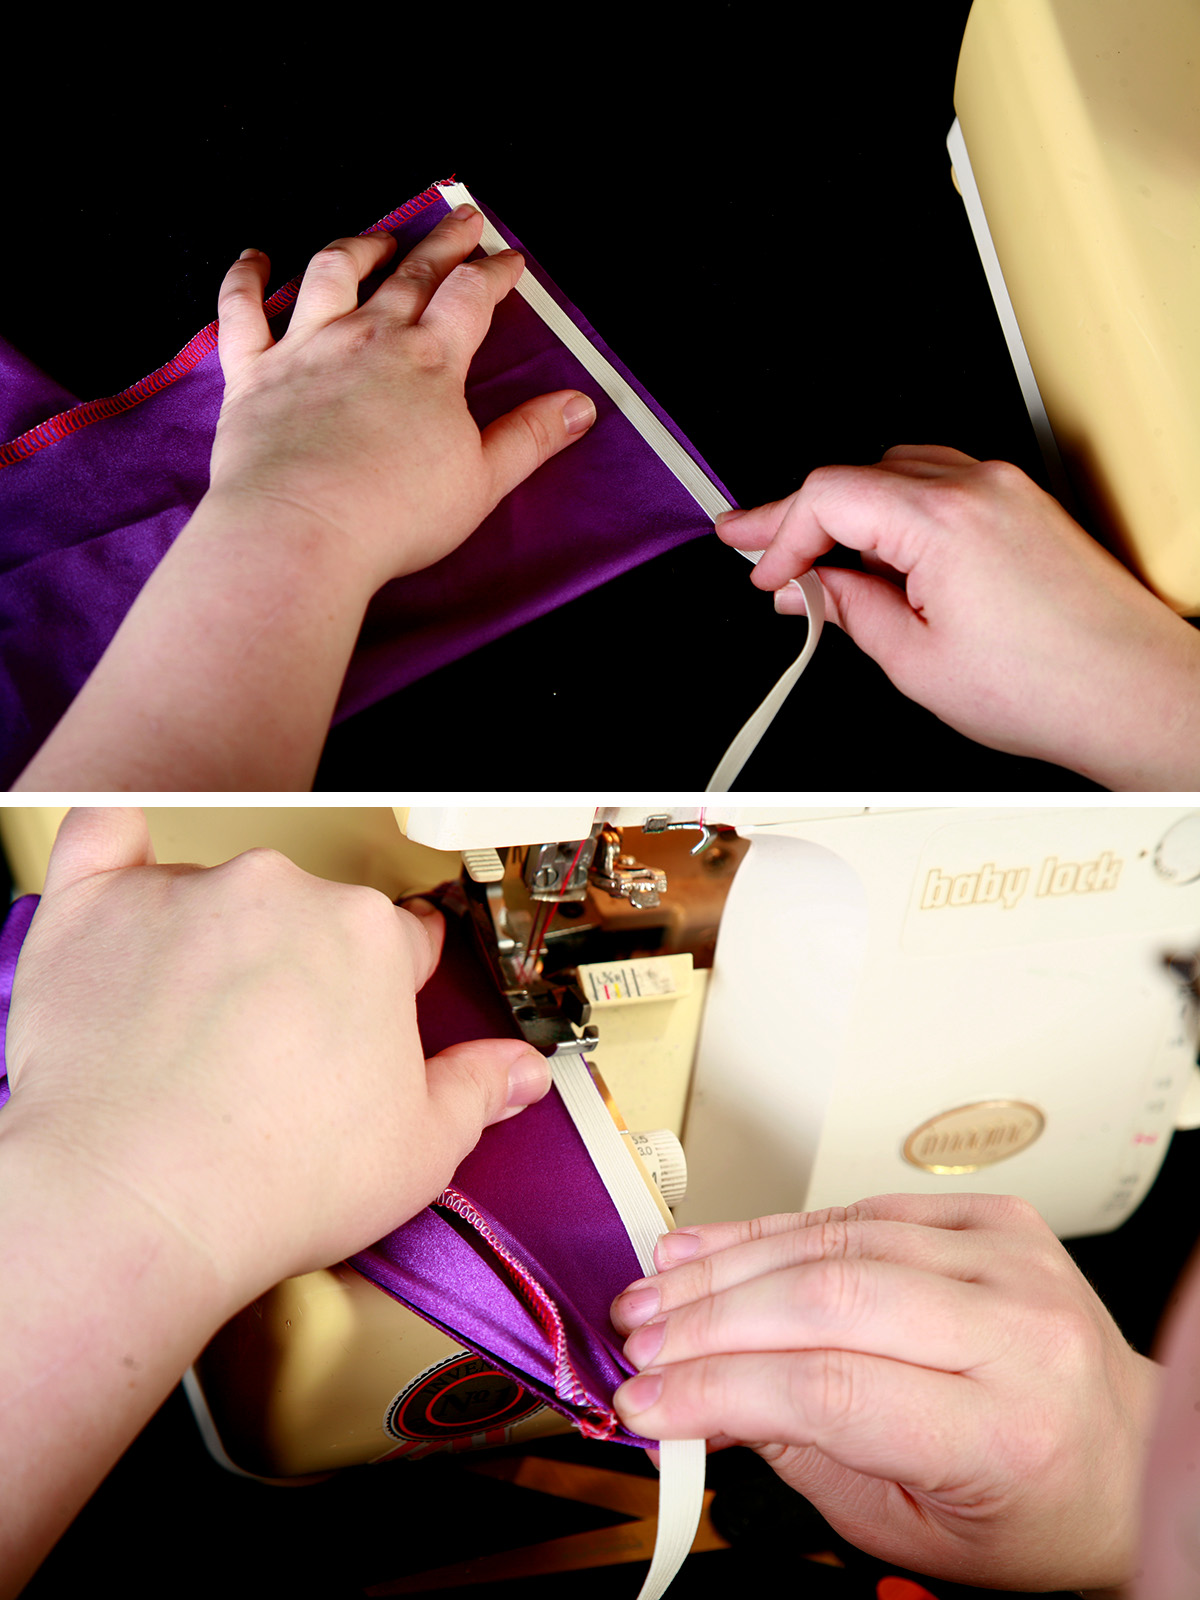 A 2 photo compilation image showing elastic being sewn into the top of a spandex boot cover.